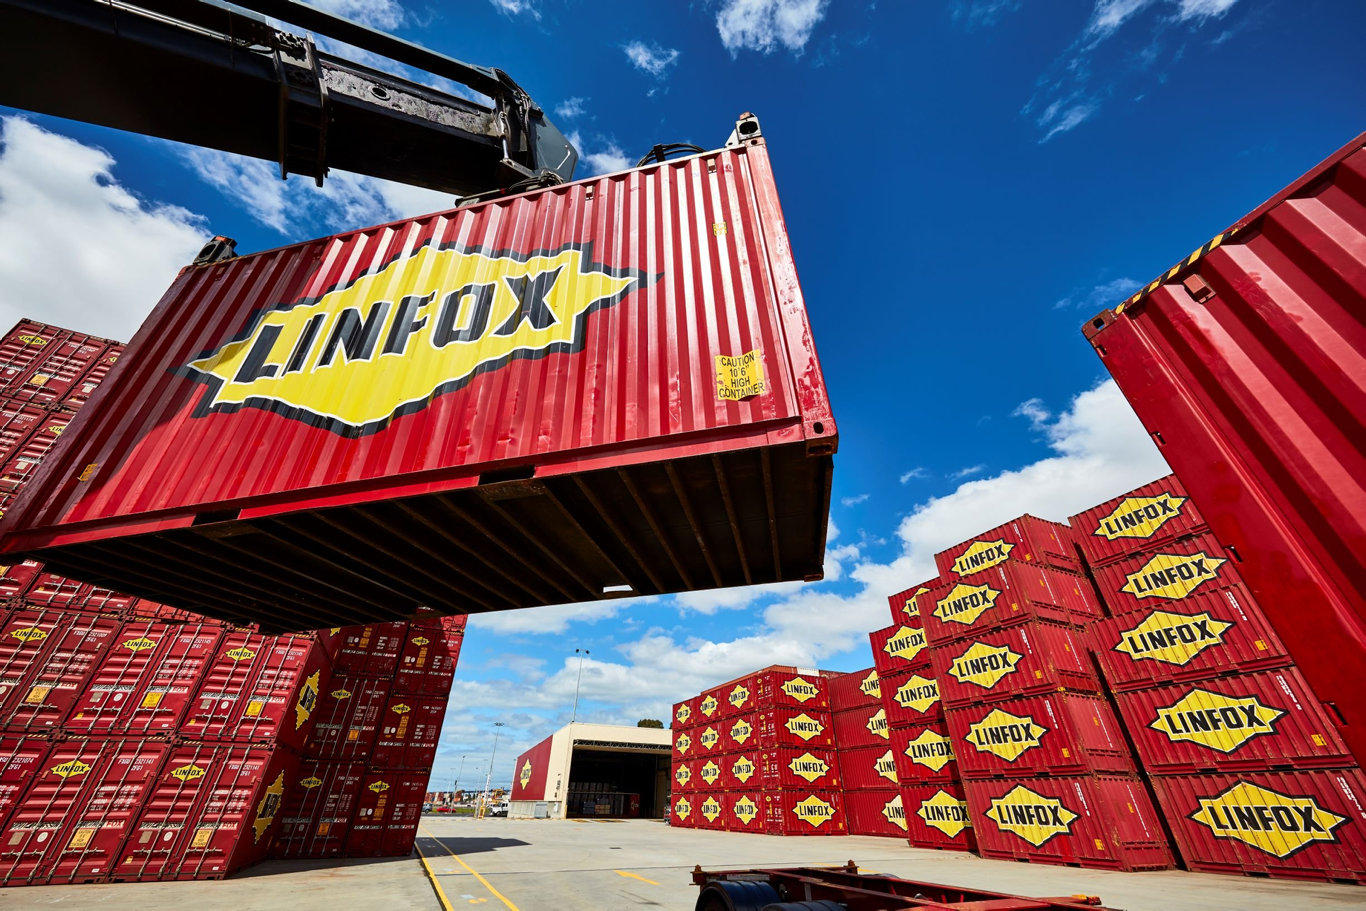 Linfox is now set to welcome almost 200 Aurizon employees into the Linfox Intermodal business unit.